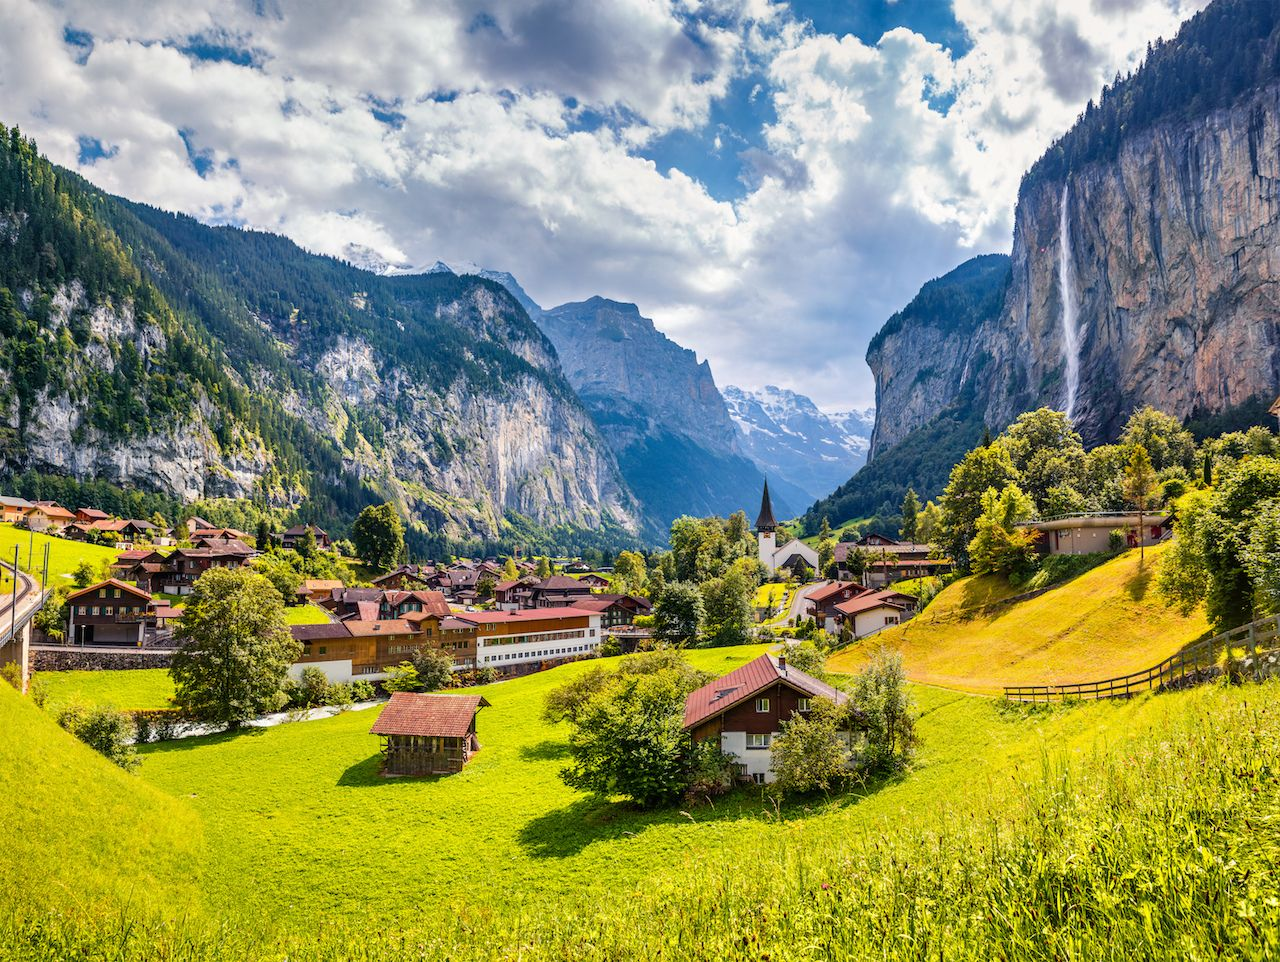 Waterfall in Lauterbrunnen Switzerland village